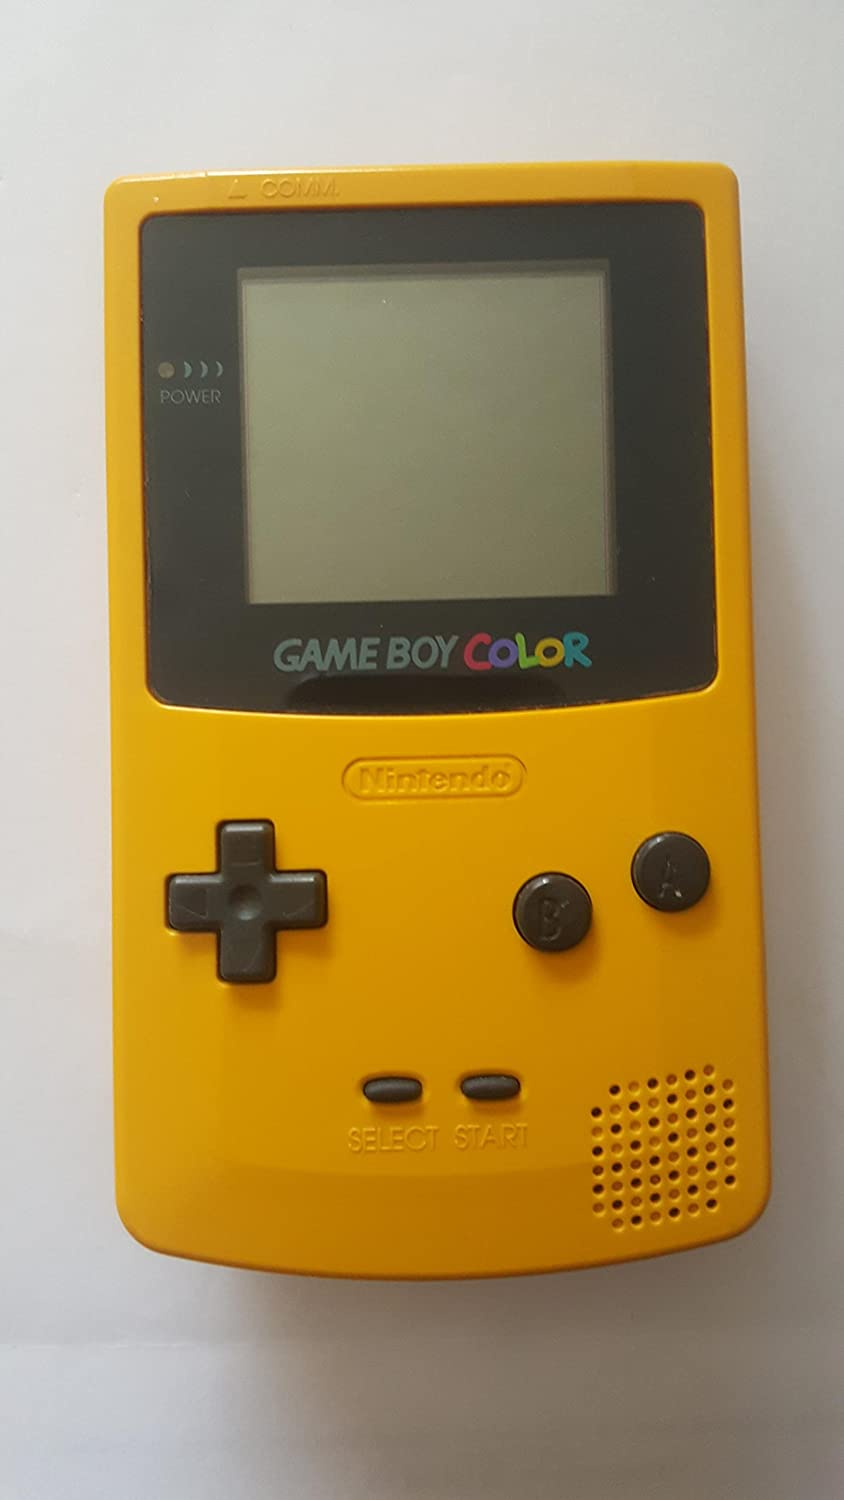 Gameboy color kijiji - Game Boy Color Dandelion Game Boy Computer And Video Games Amazon Ca